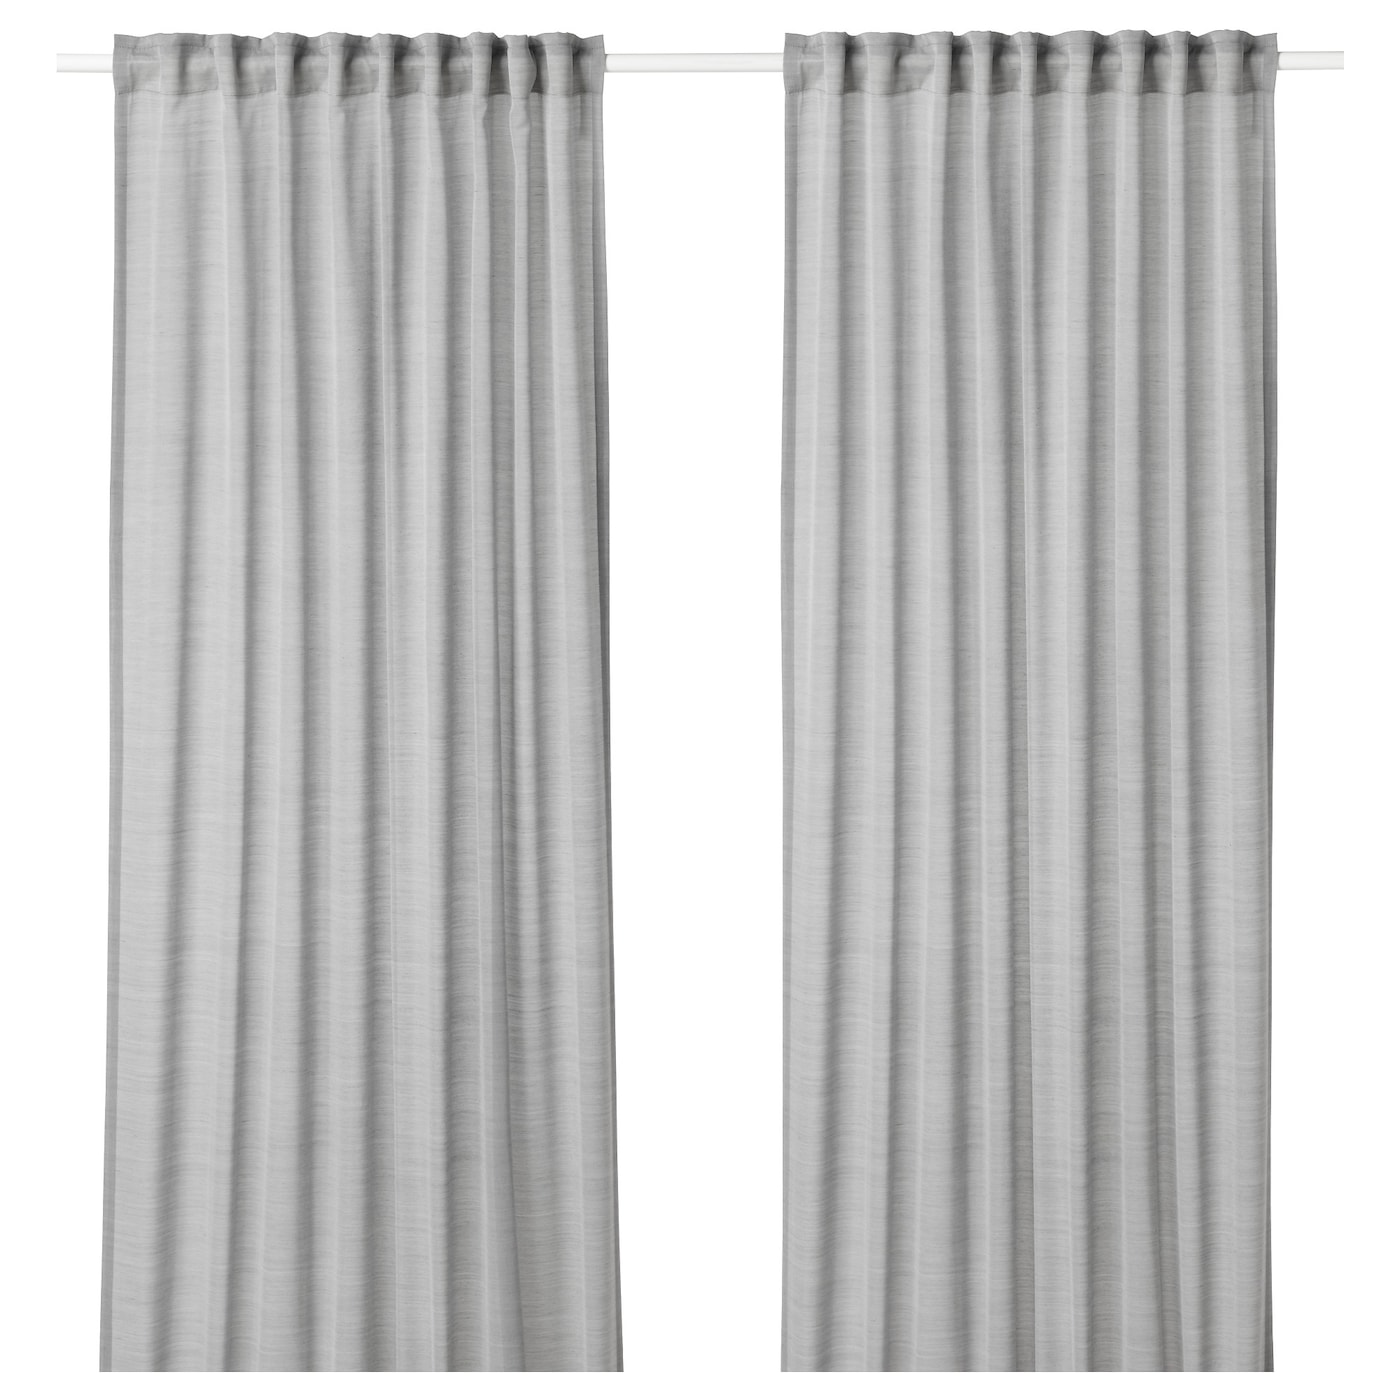 IKEA HILJA curtains, 1 pair The curtains can be used on a curtain rod or a curtain track.